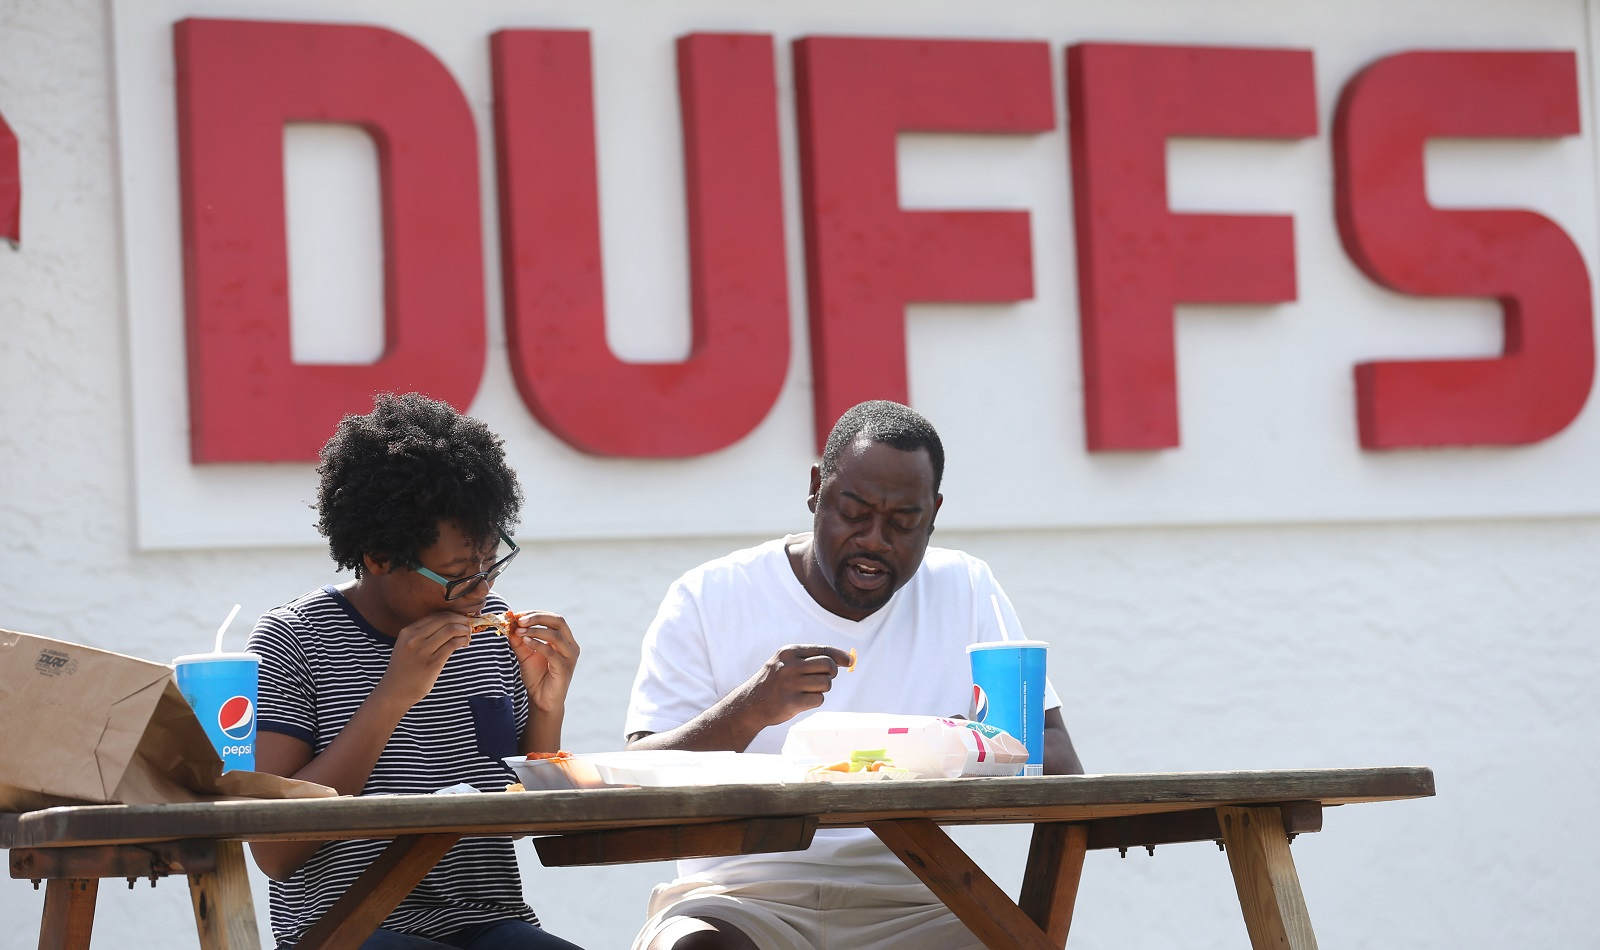 Geuka Amusa, right, and his daughter Isis, of Atlanta, drove straight from the airport to have lunch at Duff's on the way to Niagara Falls. (Sharon Cantillon/Buffalo News)